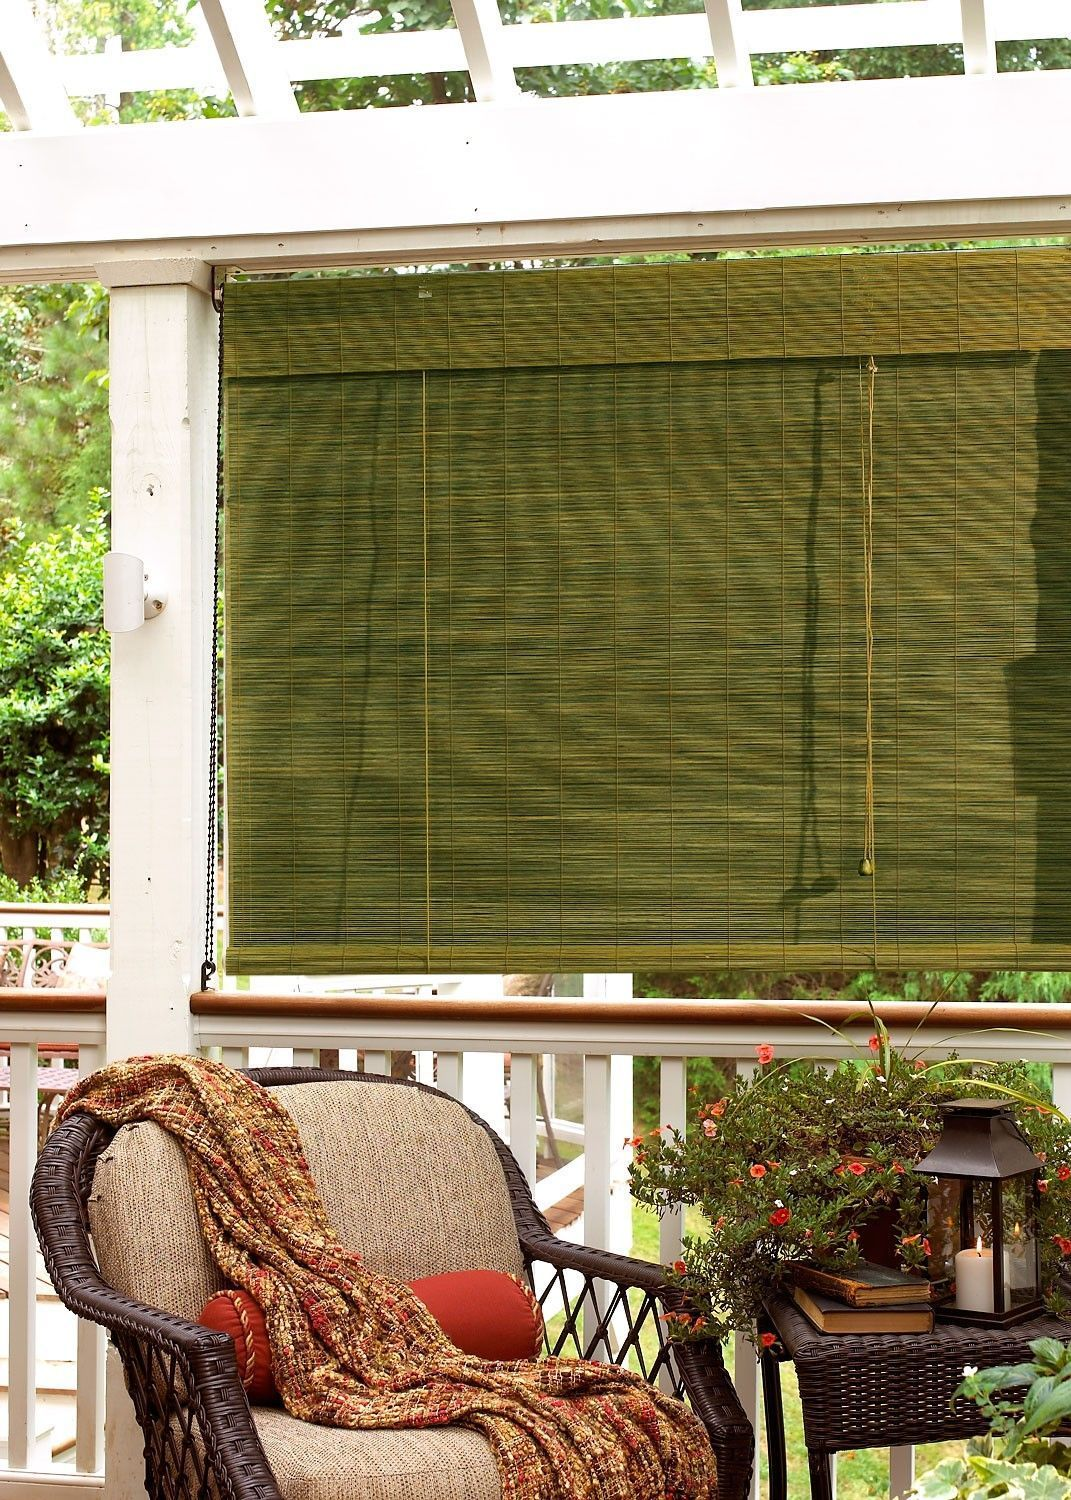 Roll up blinds double click on above image to view full picture